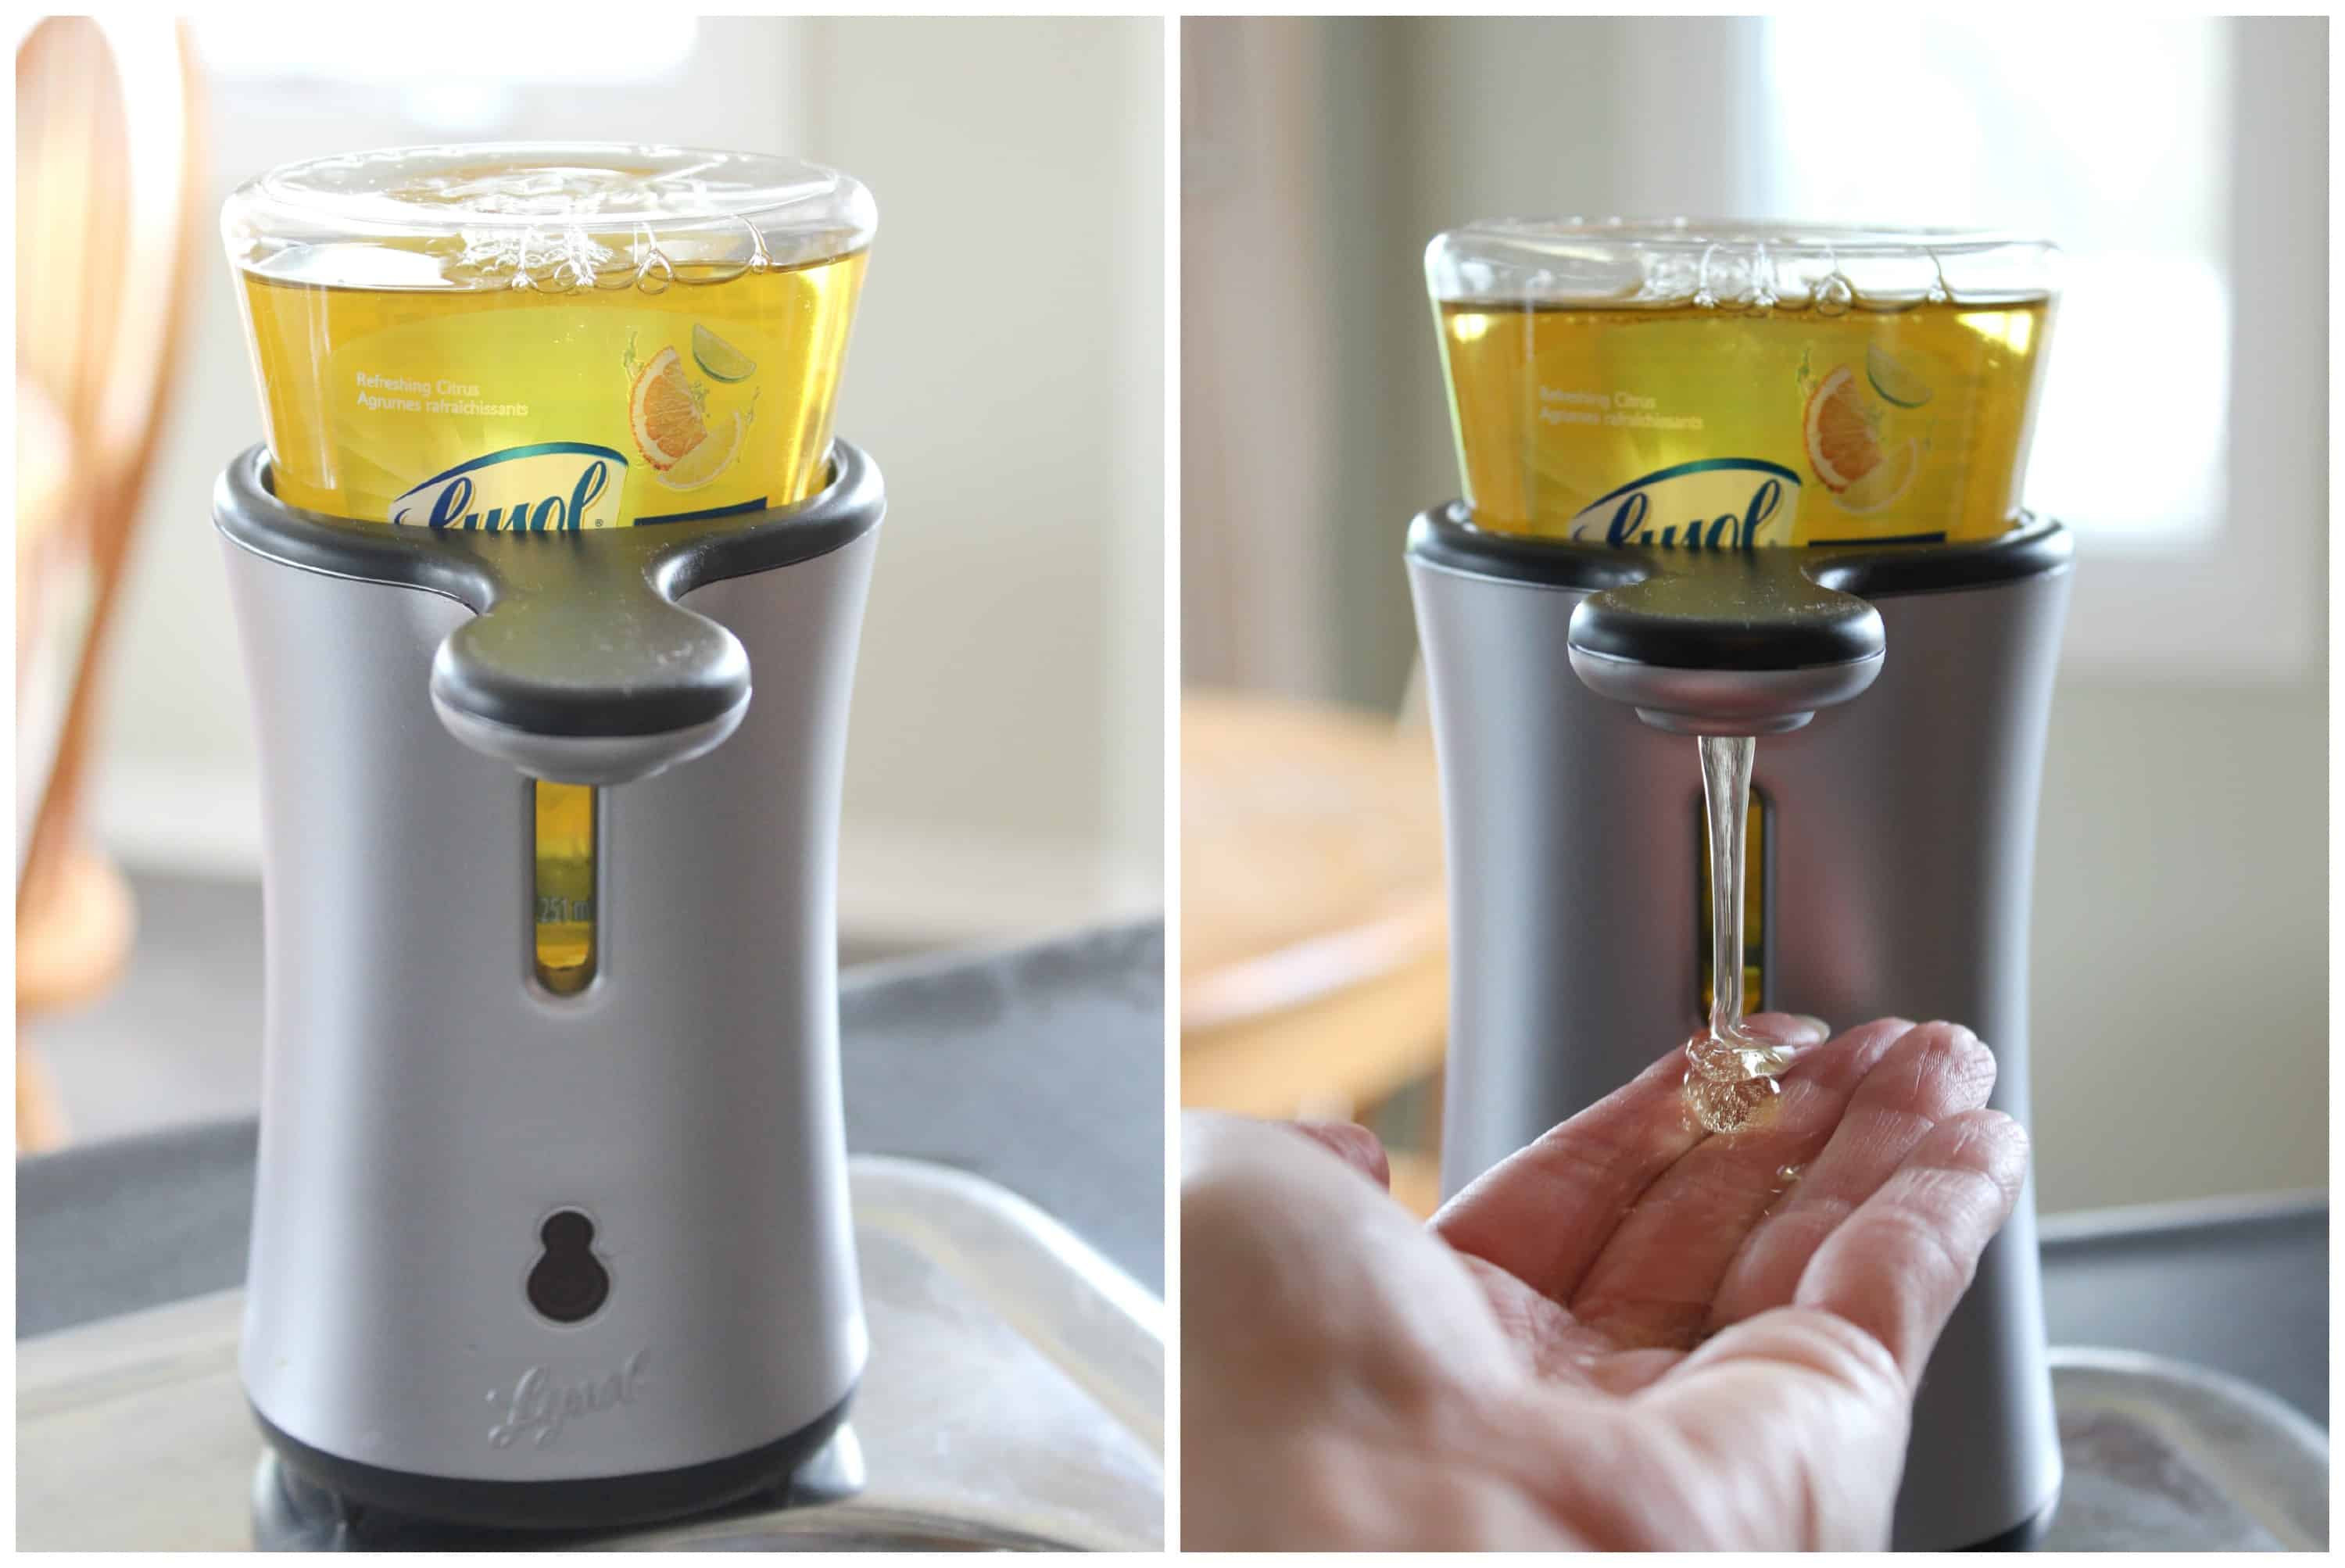 Lysol No Touch Antibacterial Hand Soap System